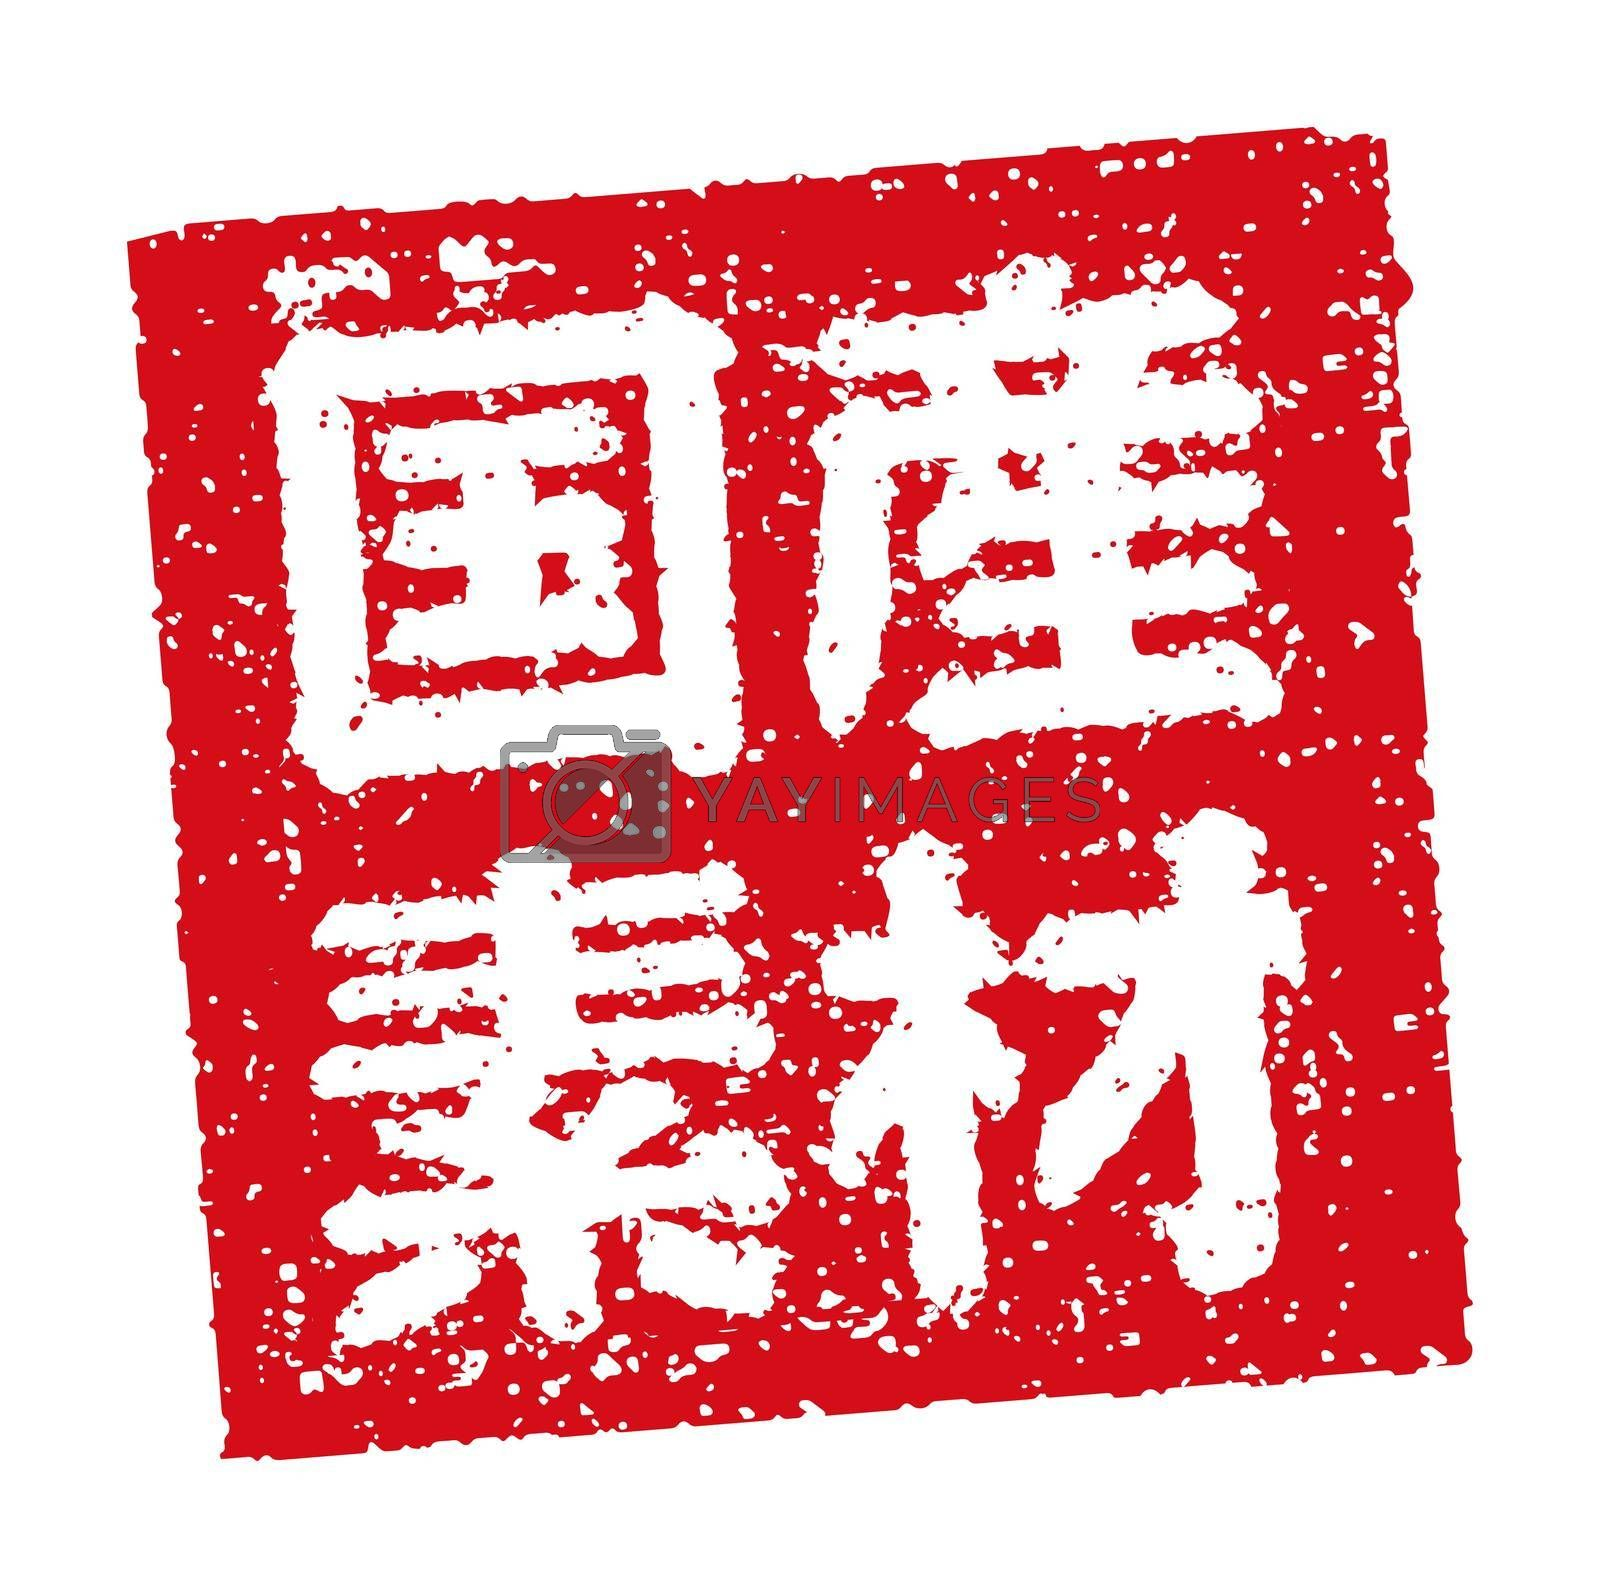 Rubber stamp illustration often used in Japanese restaurants and pubs   Domestic ingredients